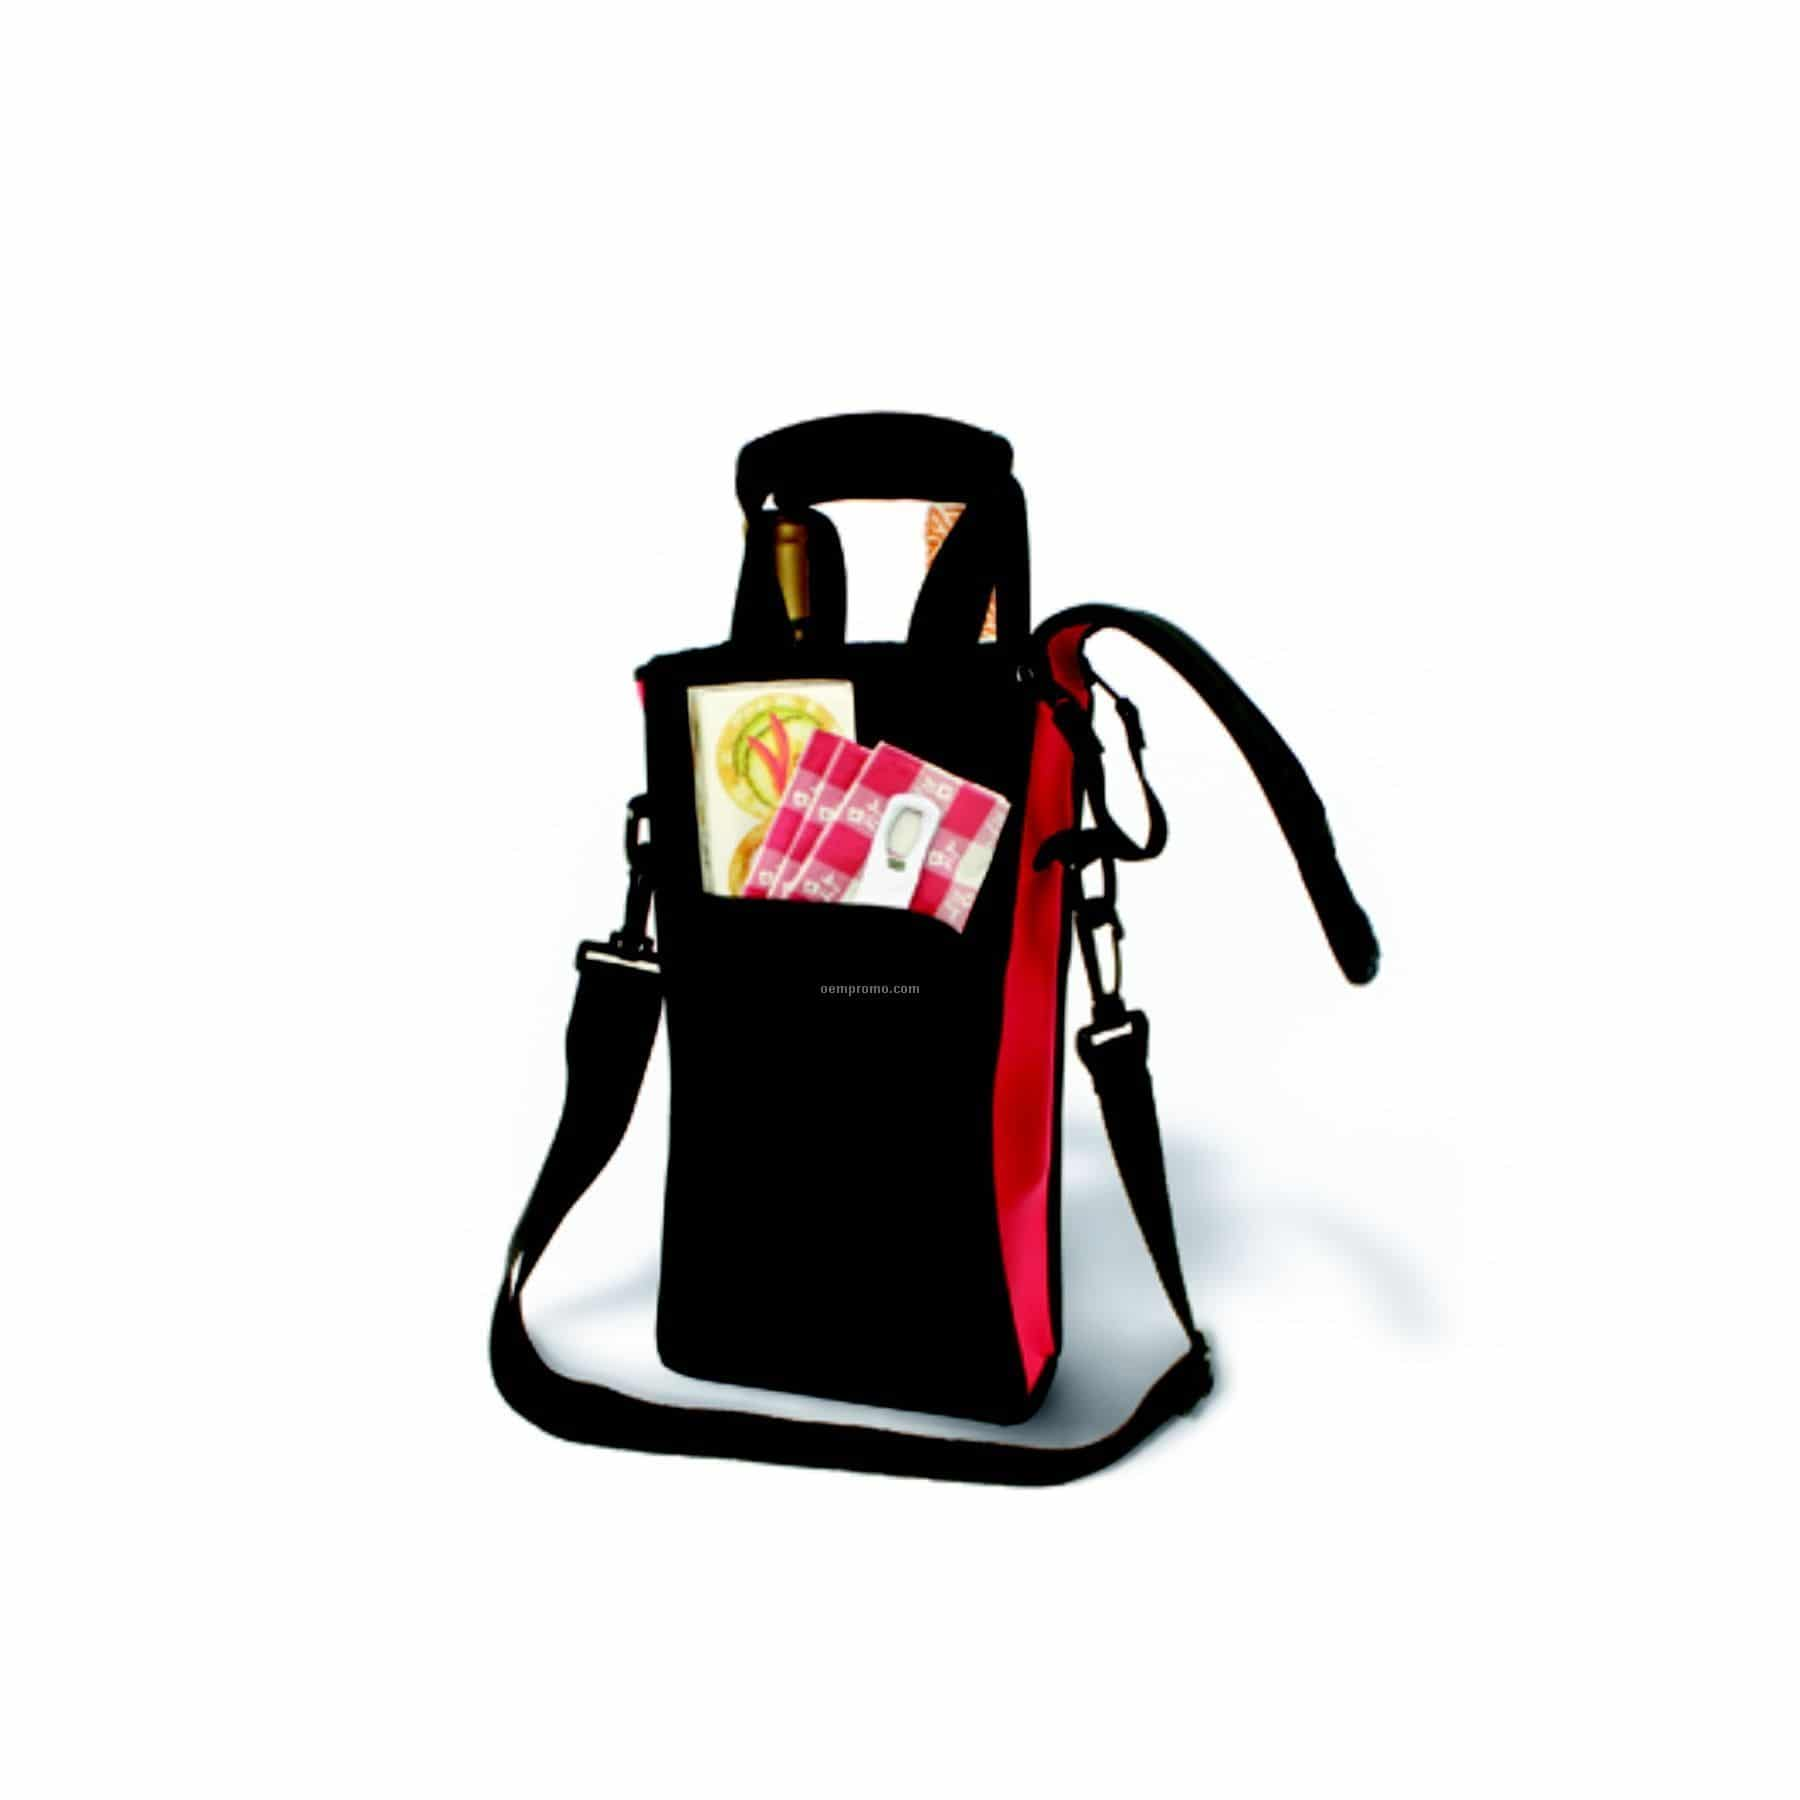 Picnic Neoprene Two-Bottle Tote Bag with Gel Packs, black and red